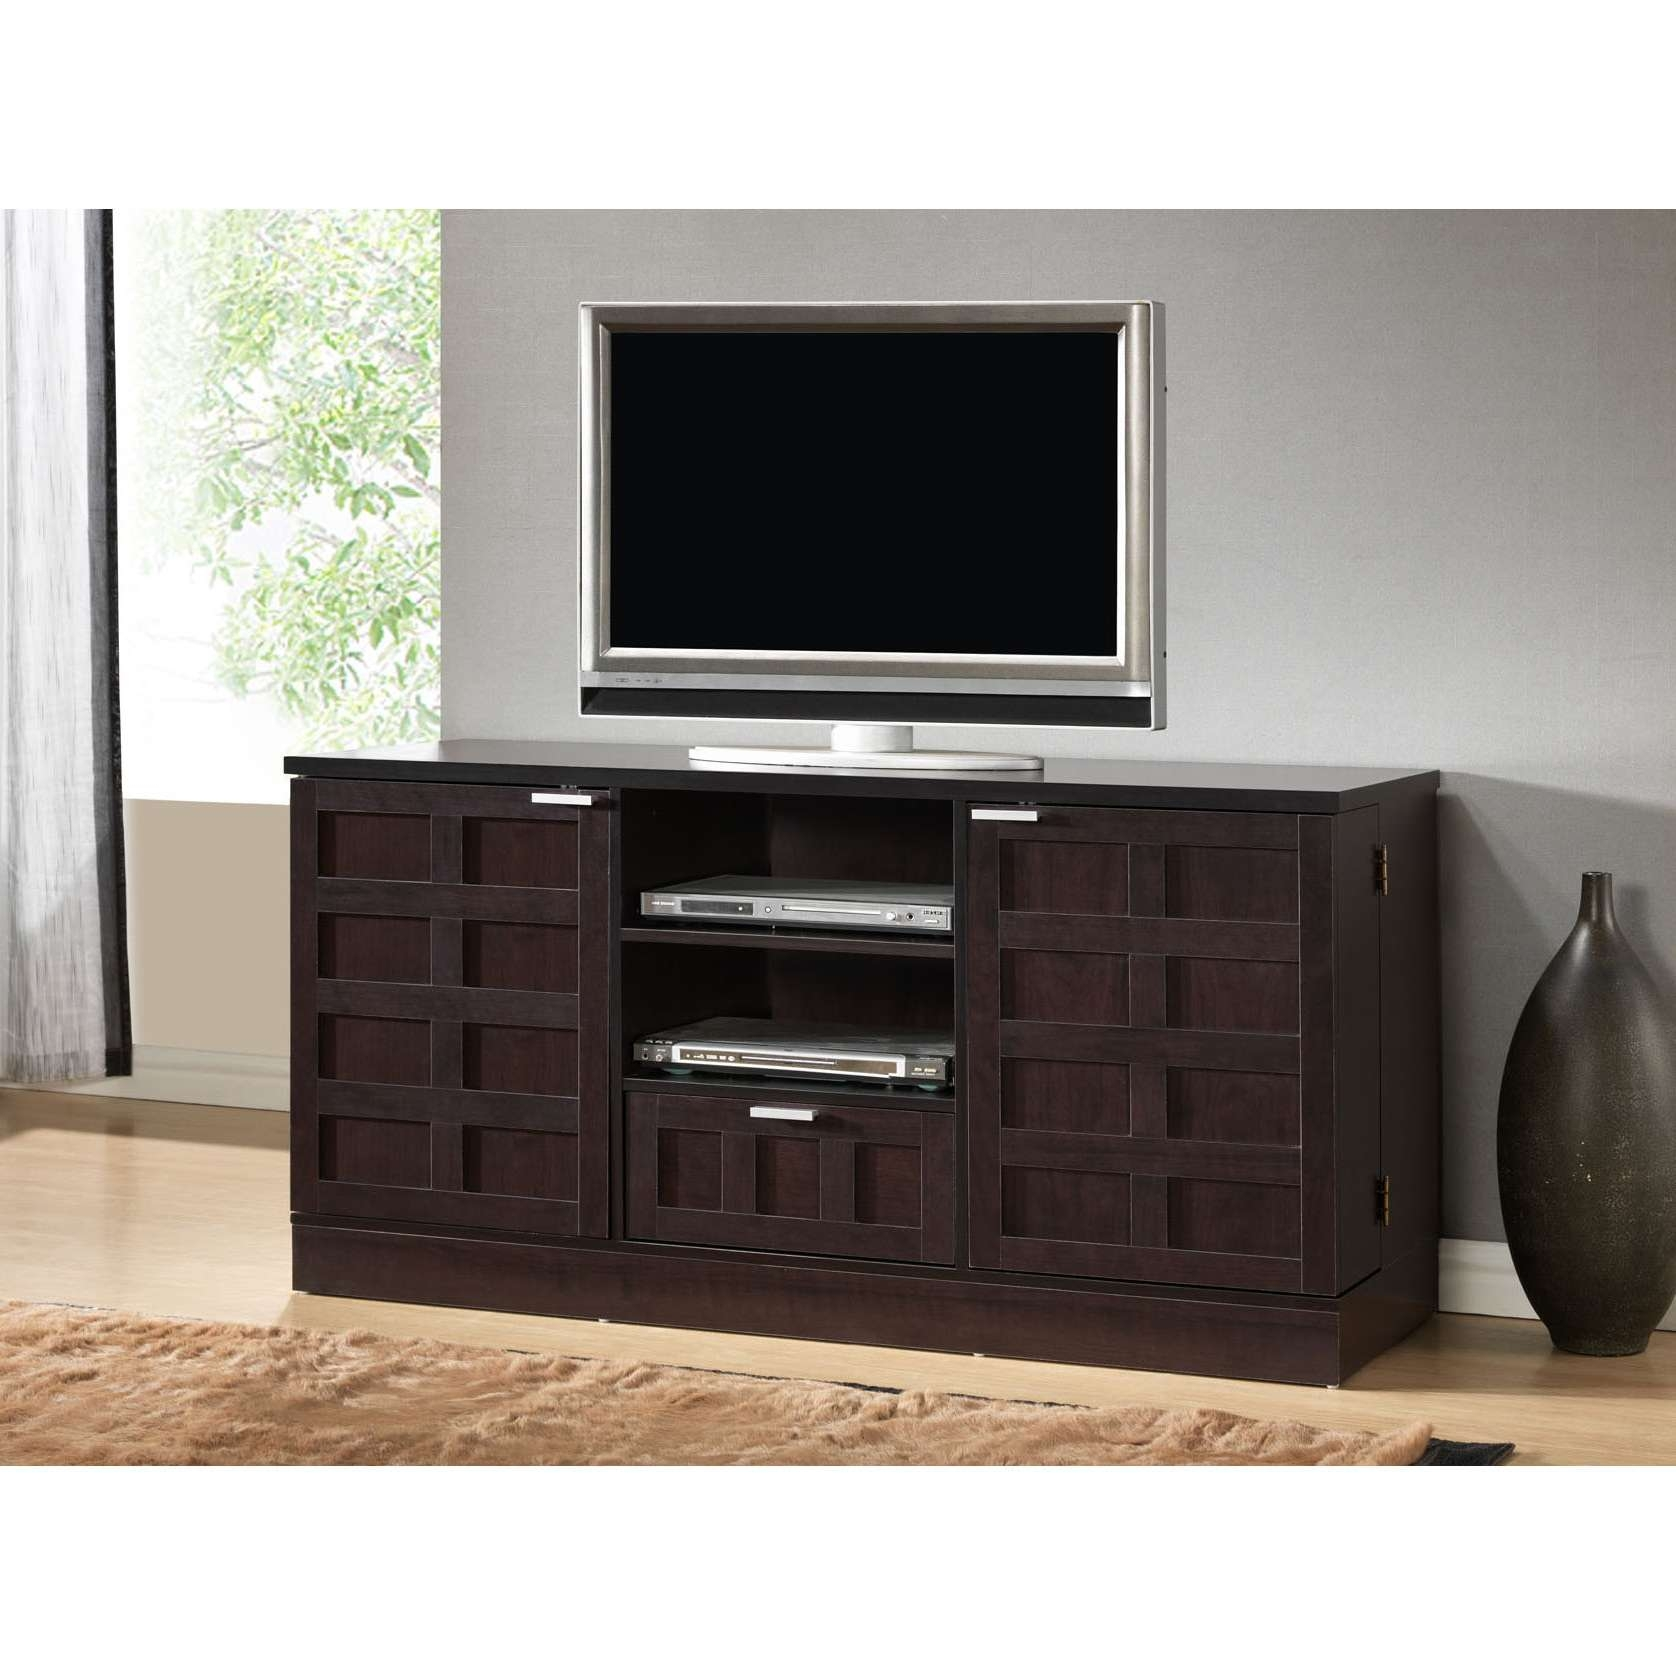 Black Wooden Tv Cabinet With Doors And Racks Also Single Drawer On For Black Tv Cabinets With Drawers (View 10 of 20)